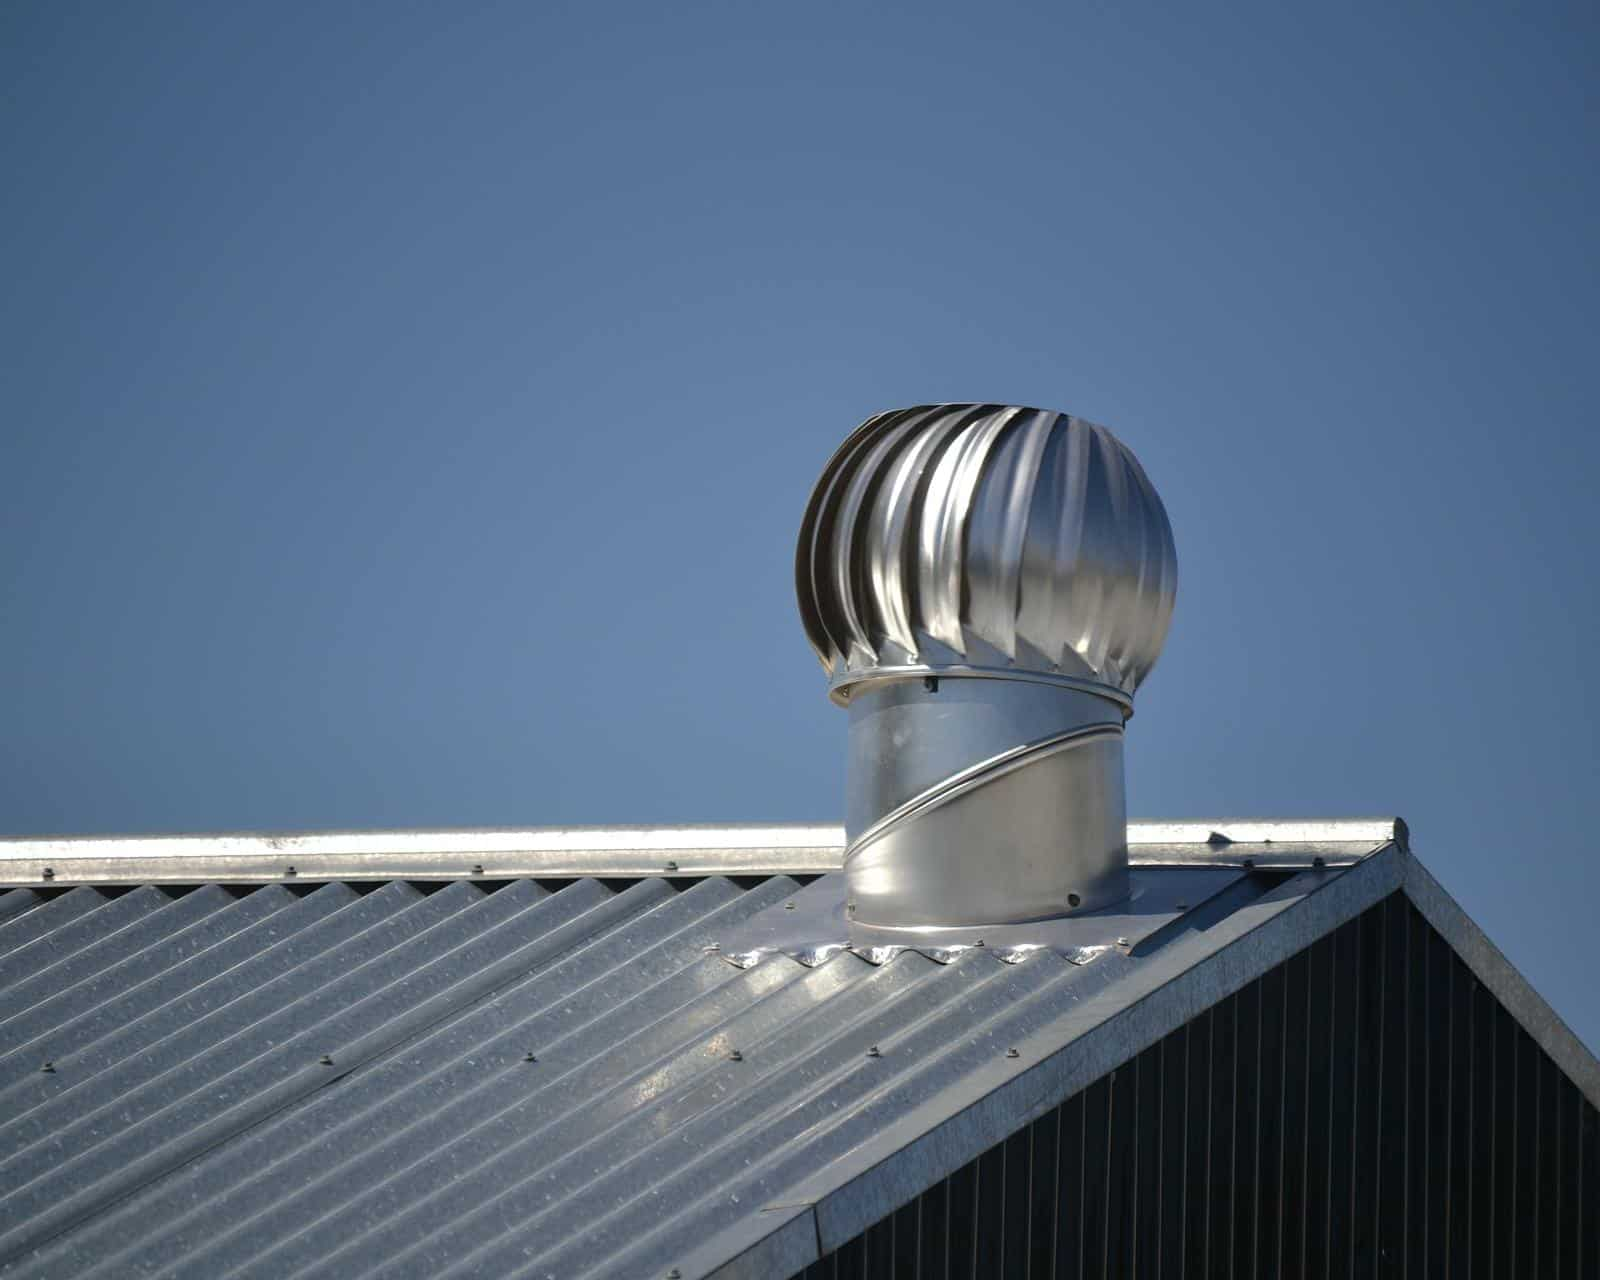 North York roof vents